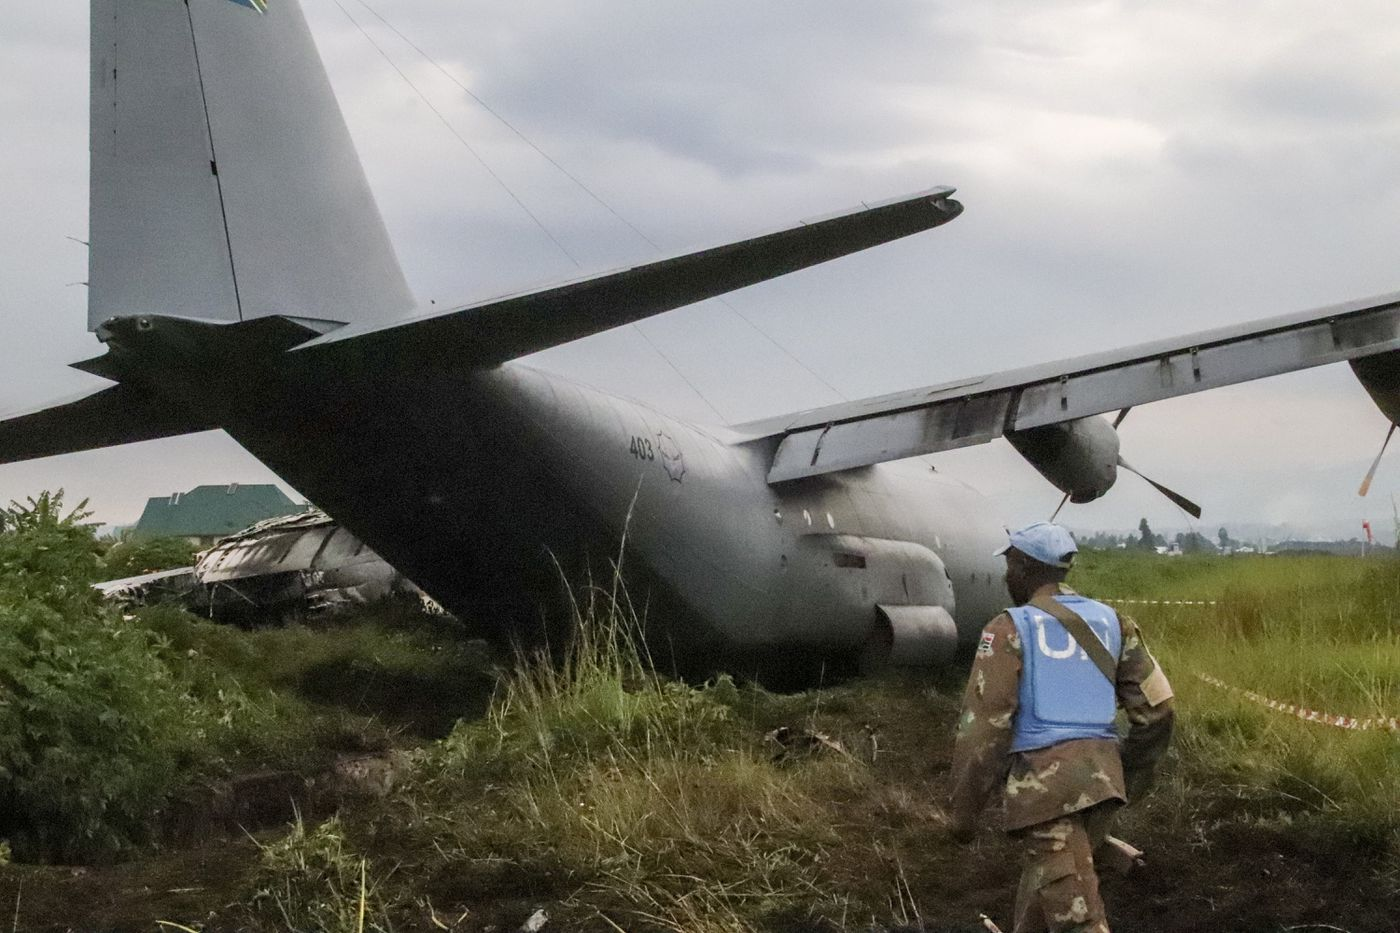 UN: South African Military Plane Crash-lands In Congo